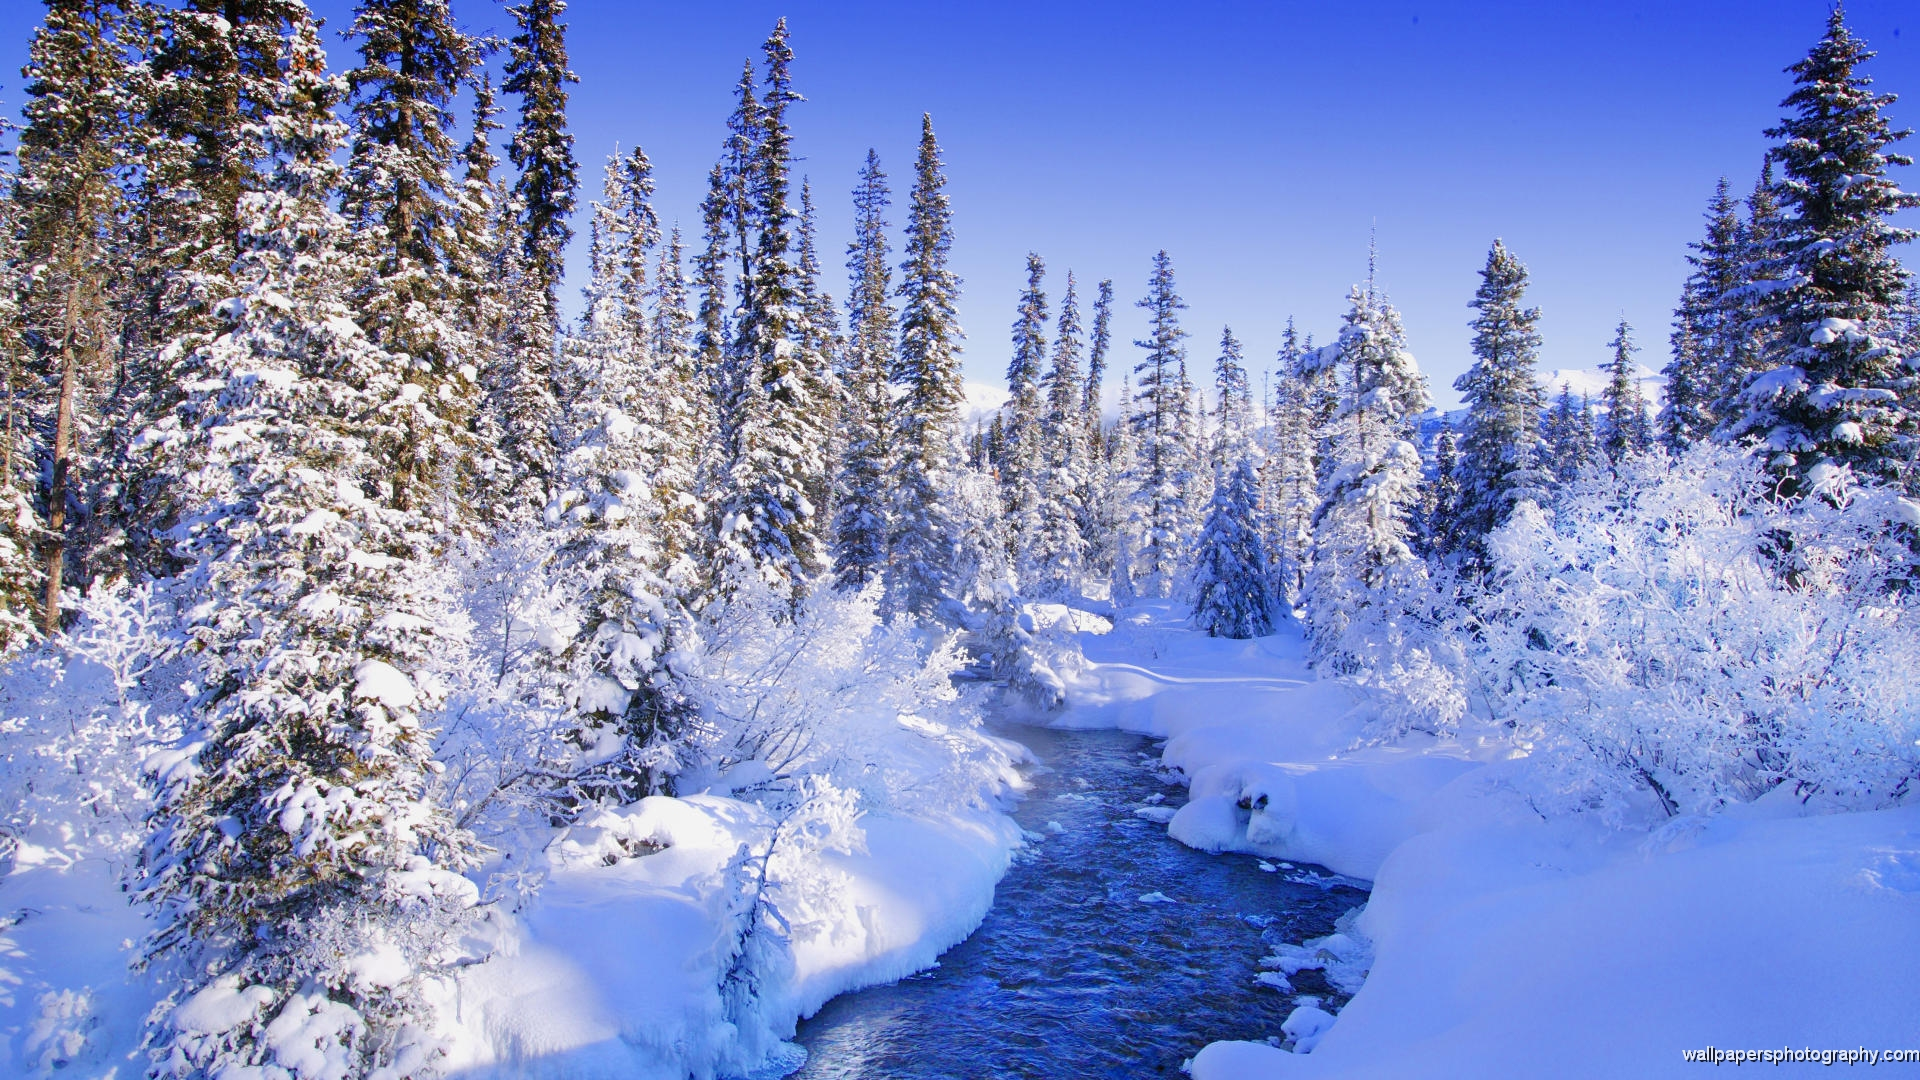 snow scenery full hd - photo #18